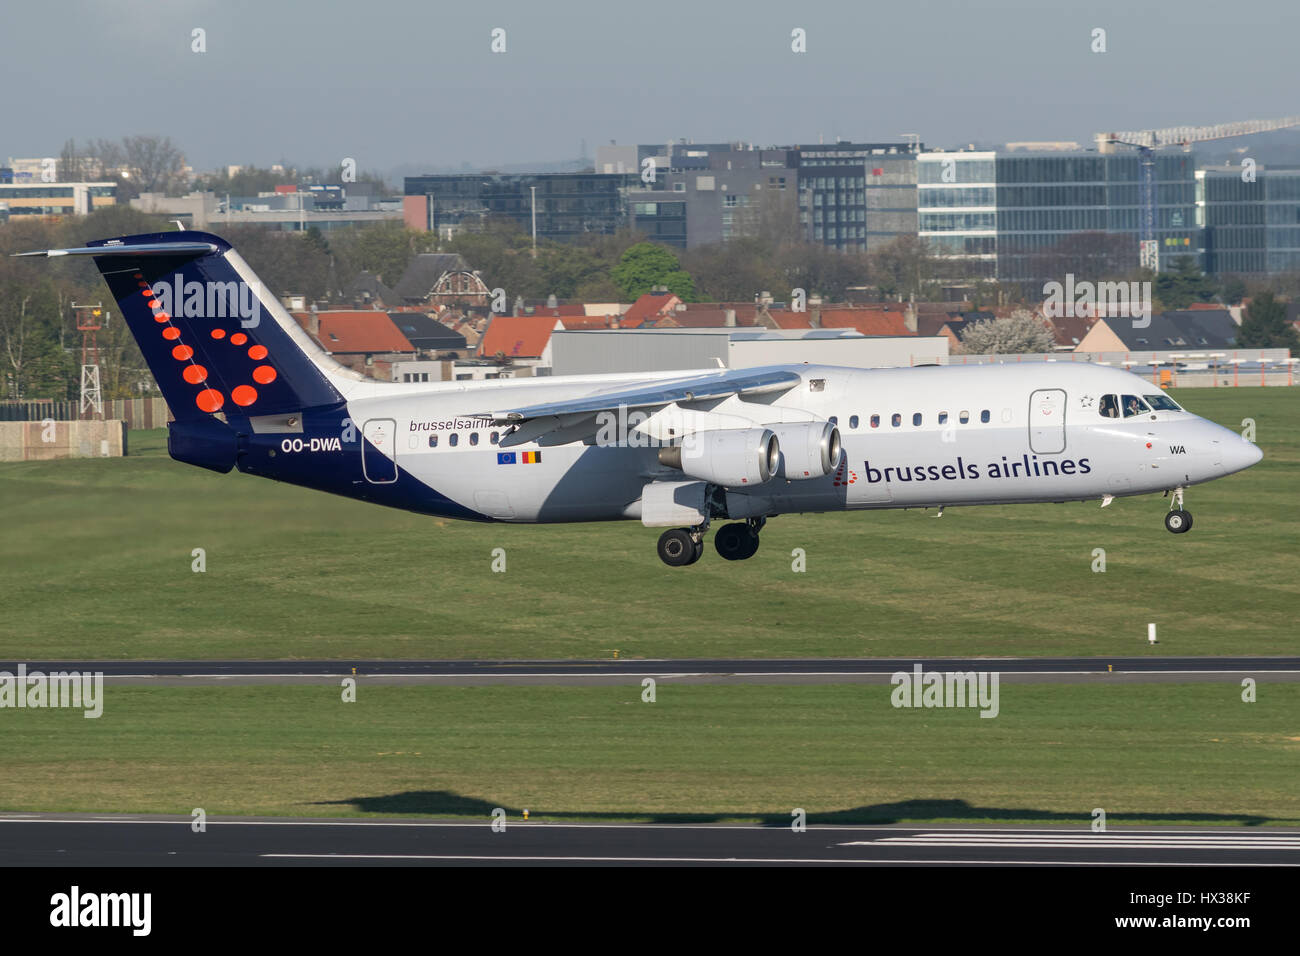 Brussels Airlines BAe Avro RJ100 landing on runway 01 at Brussels Airport. - Stock Image